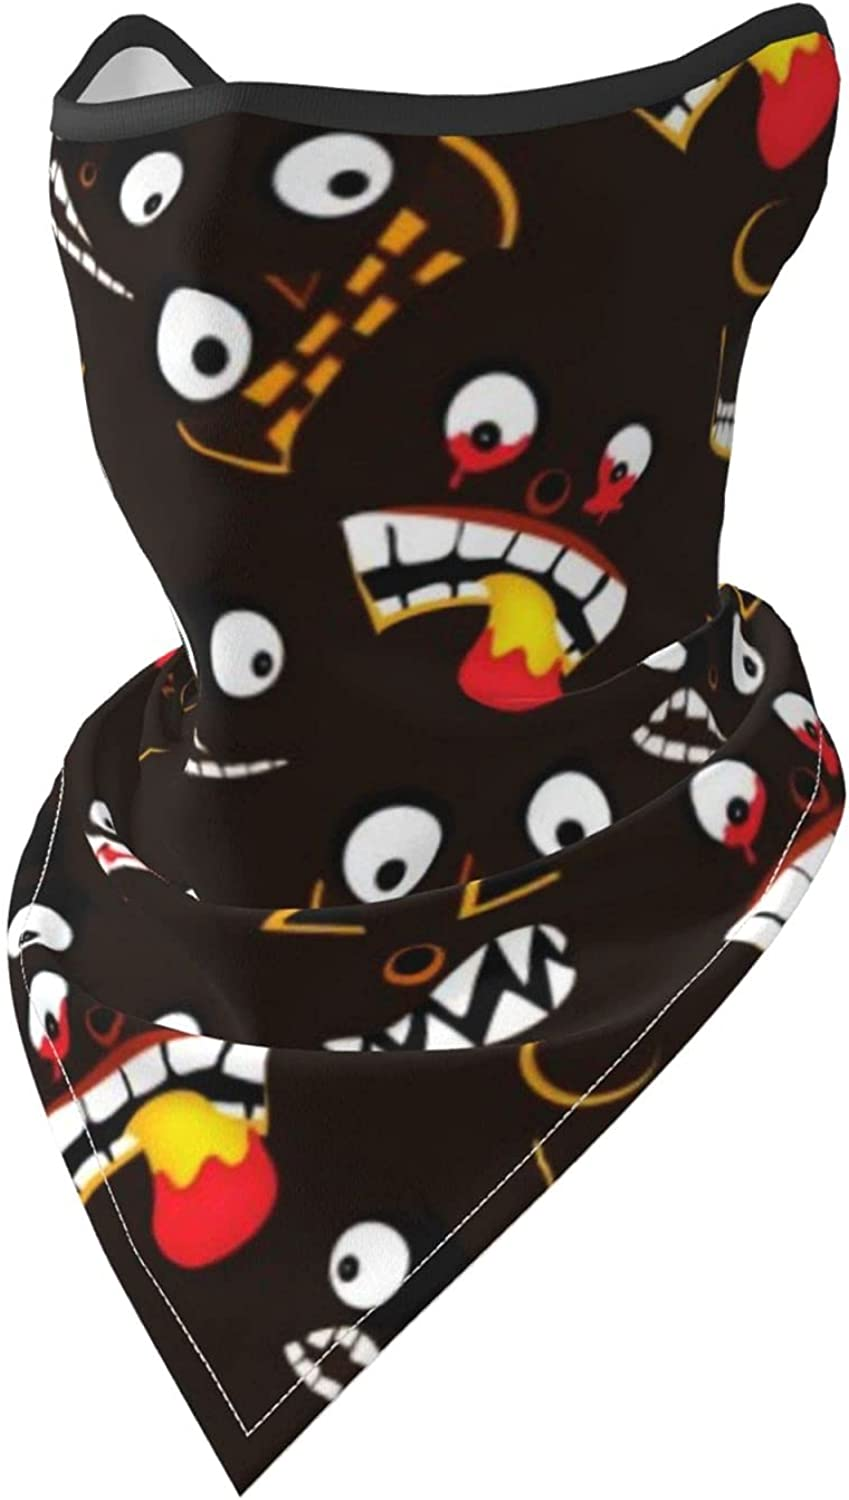 Ghost Faces Halloween Seamless Pattern Breathable Bandana Face Mask Neck Gaiter Windproof Sports Mask Scarf Headwear for Men Women Outdoor Hiking Cycling Running Motorcycling